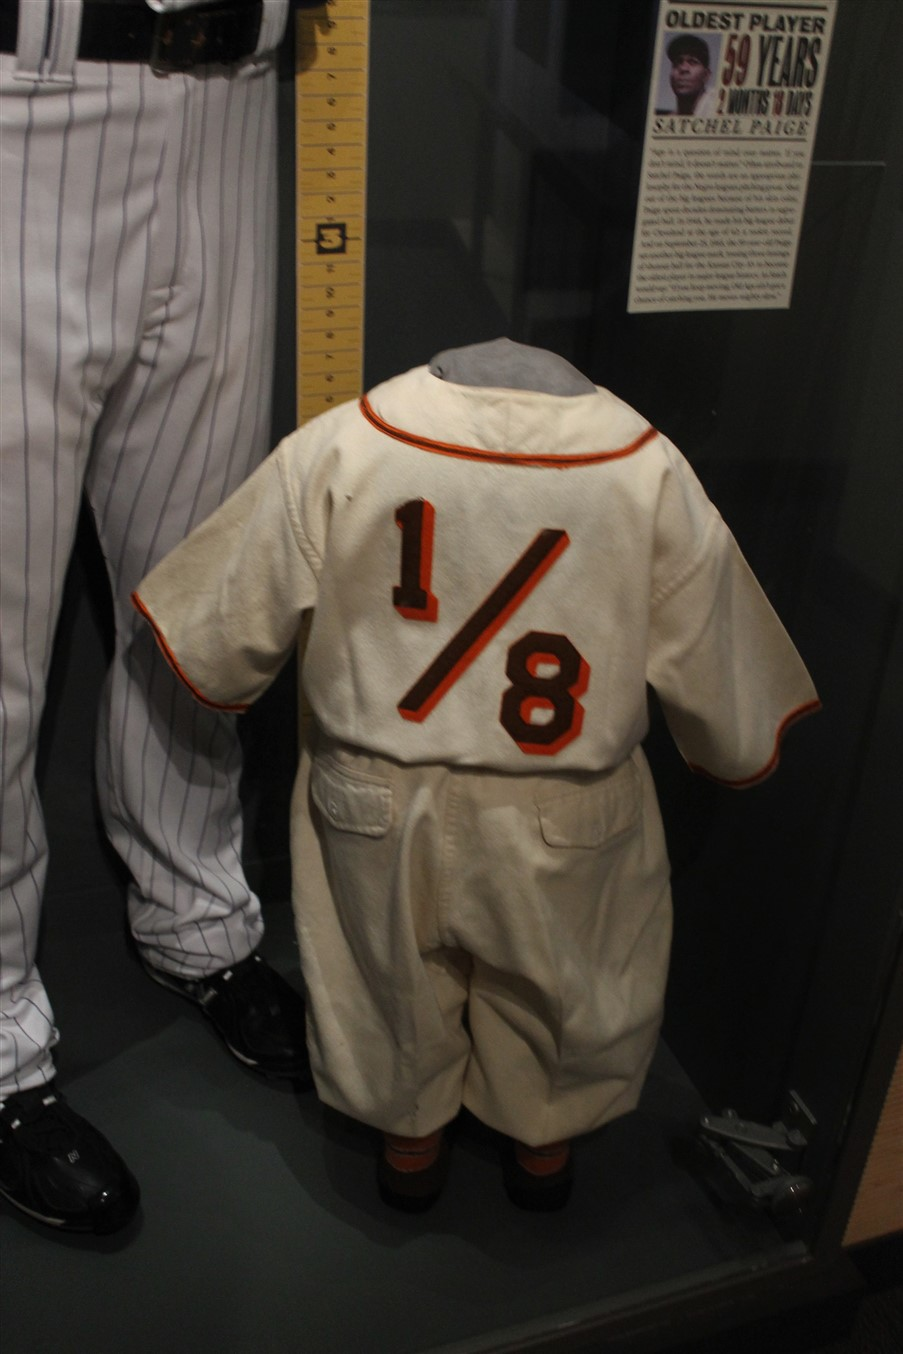 2012 08 24 93 Baseball Hall of Fame.jpg